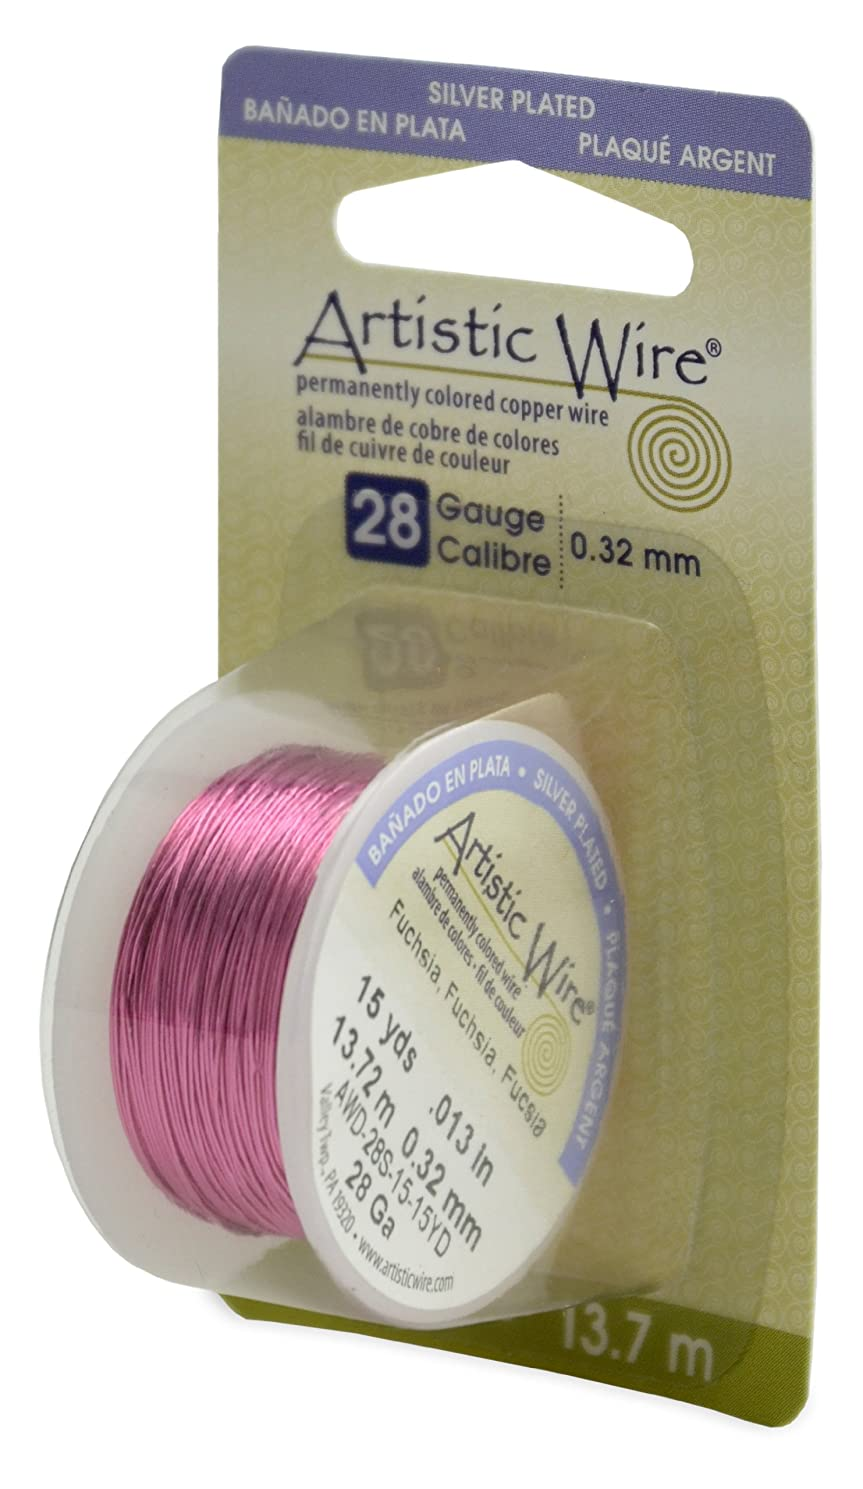 Artistic Wire Beadalon, 28 Gauge, Silver Plated Fuchsia Color, 15 yd (13.7 m) Craft Wire